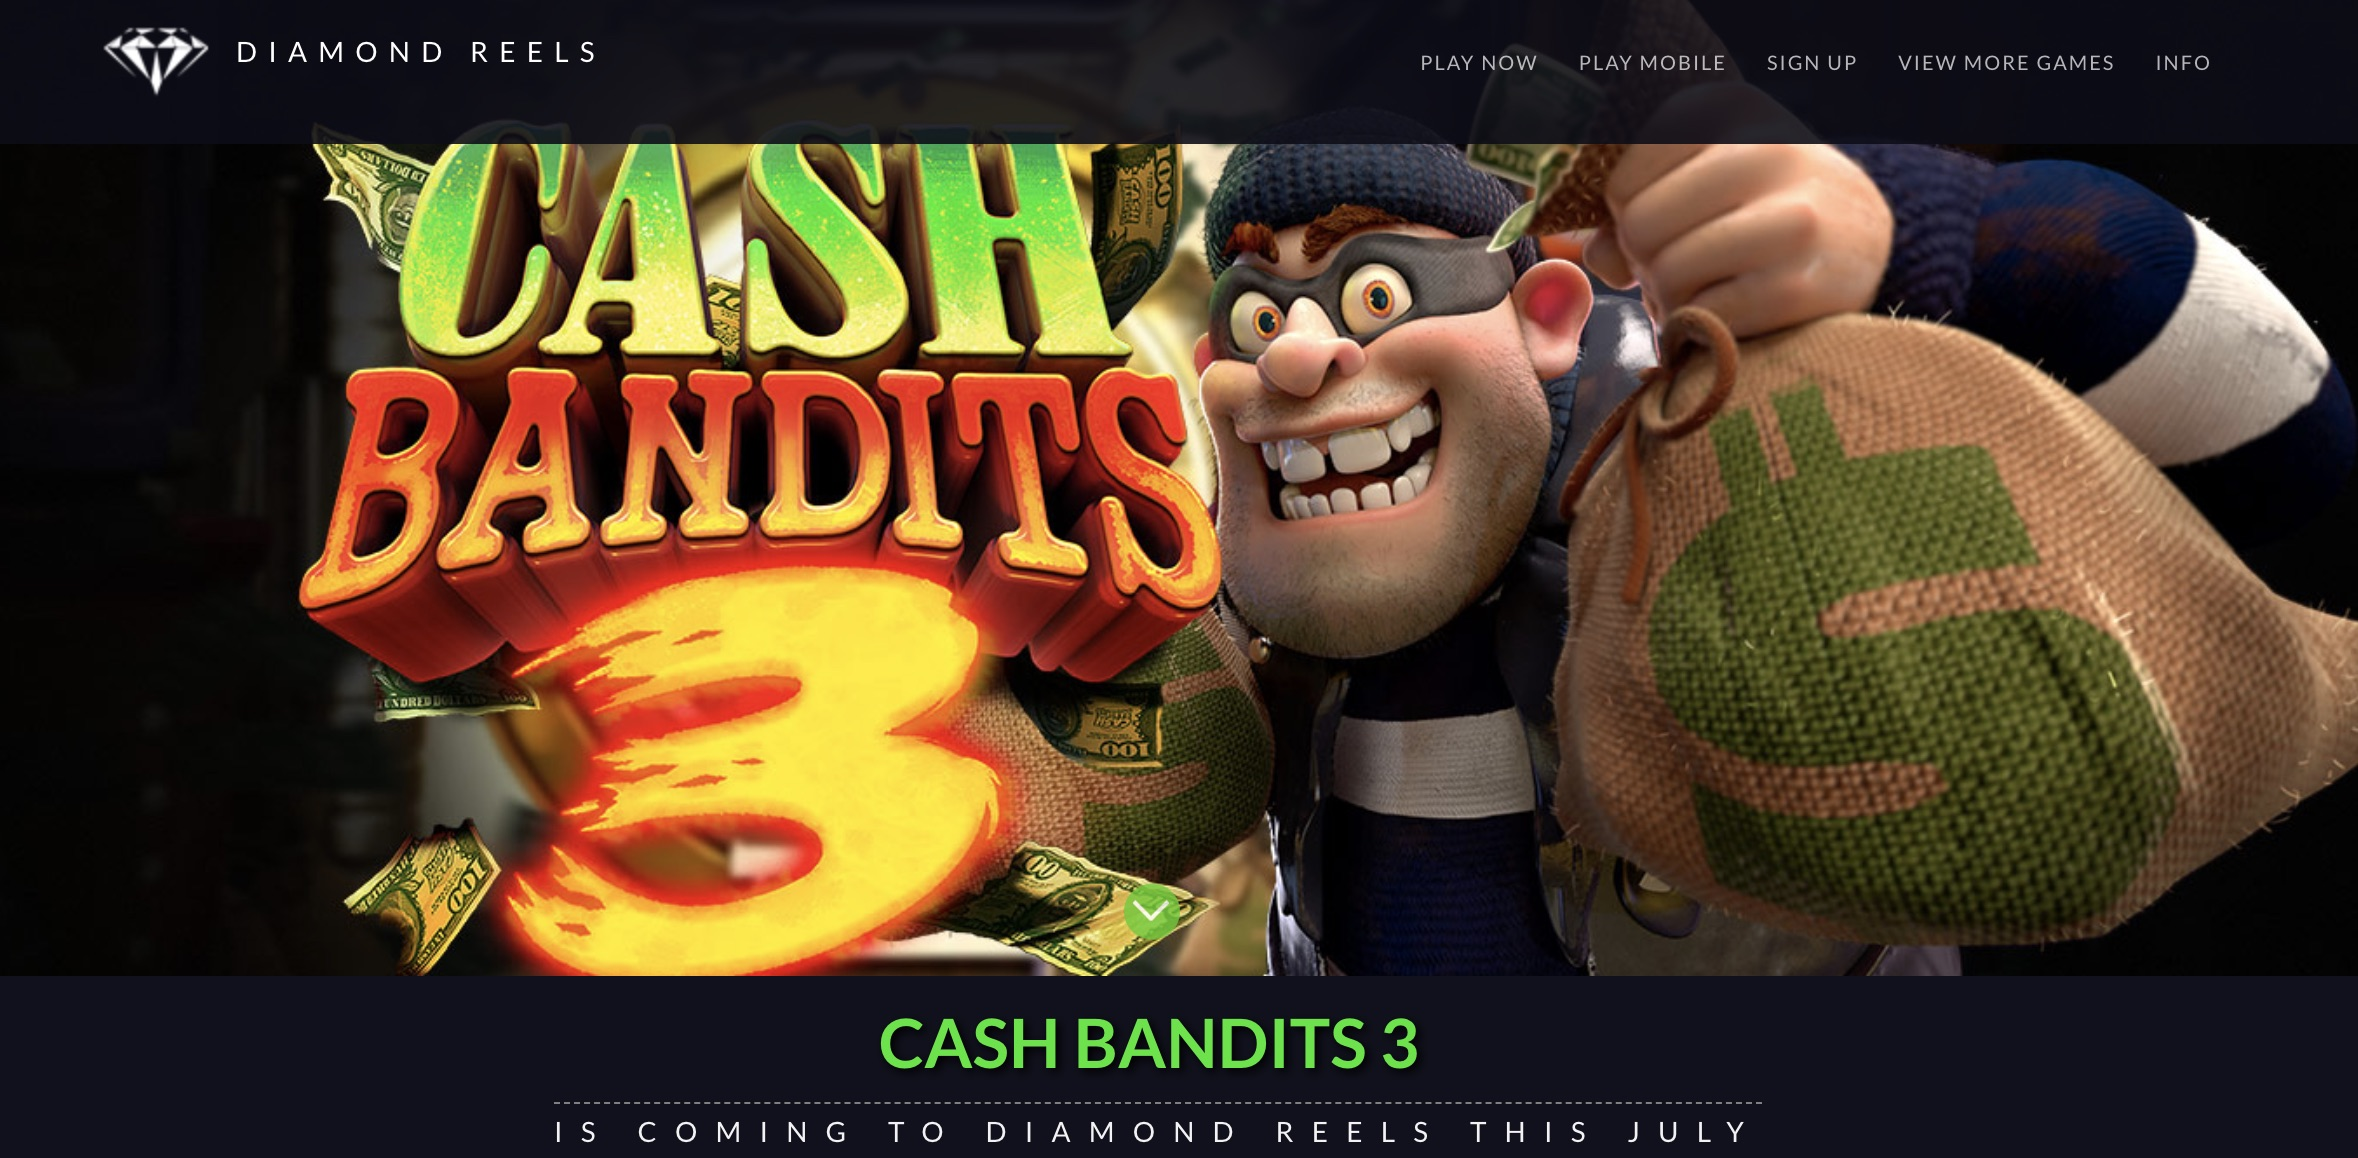 Diamond Reels Casino Casino Bonus Club